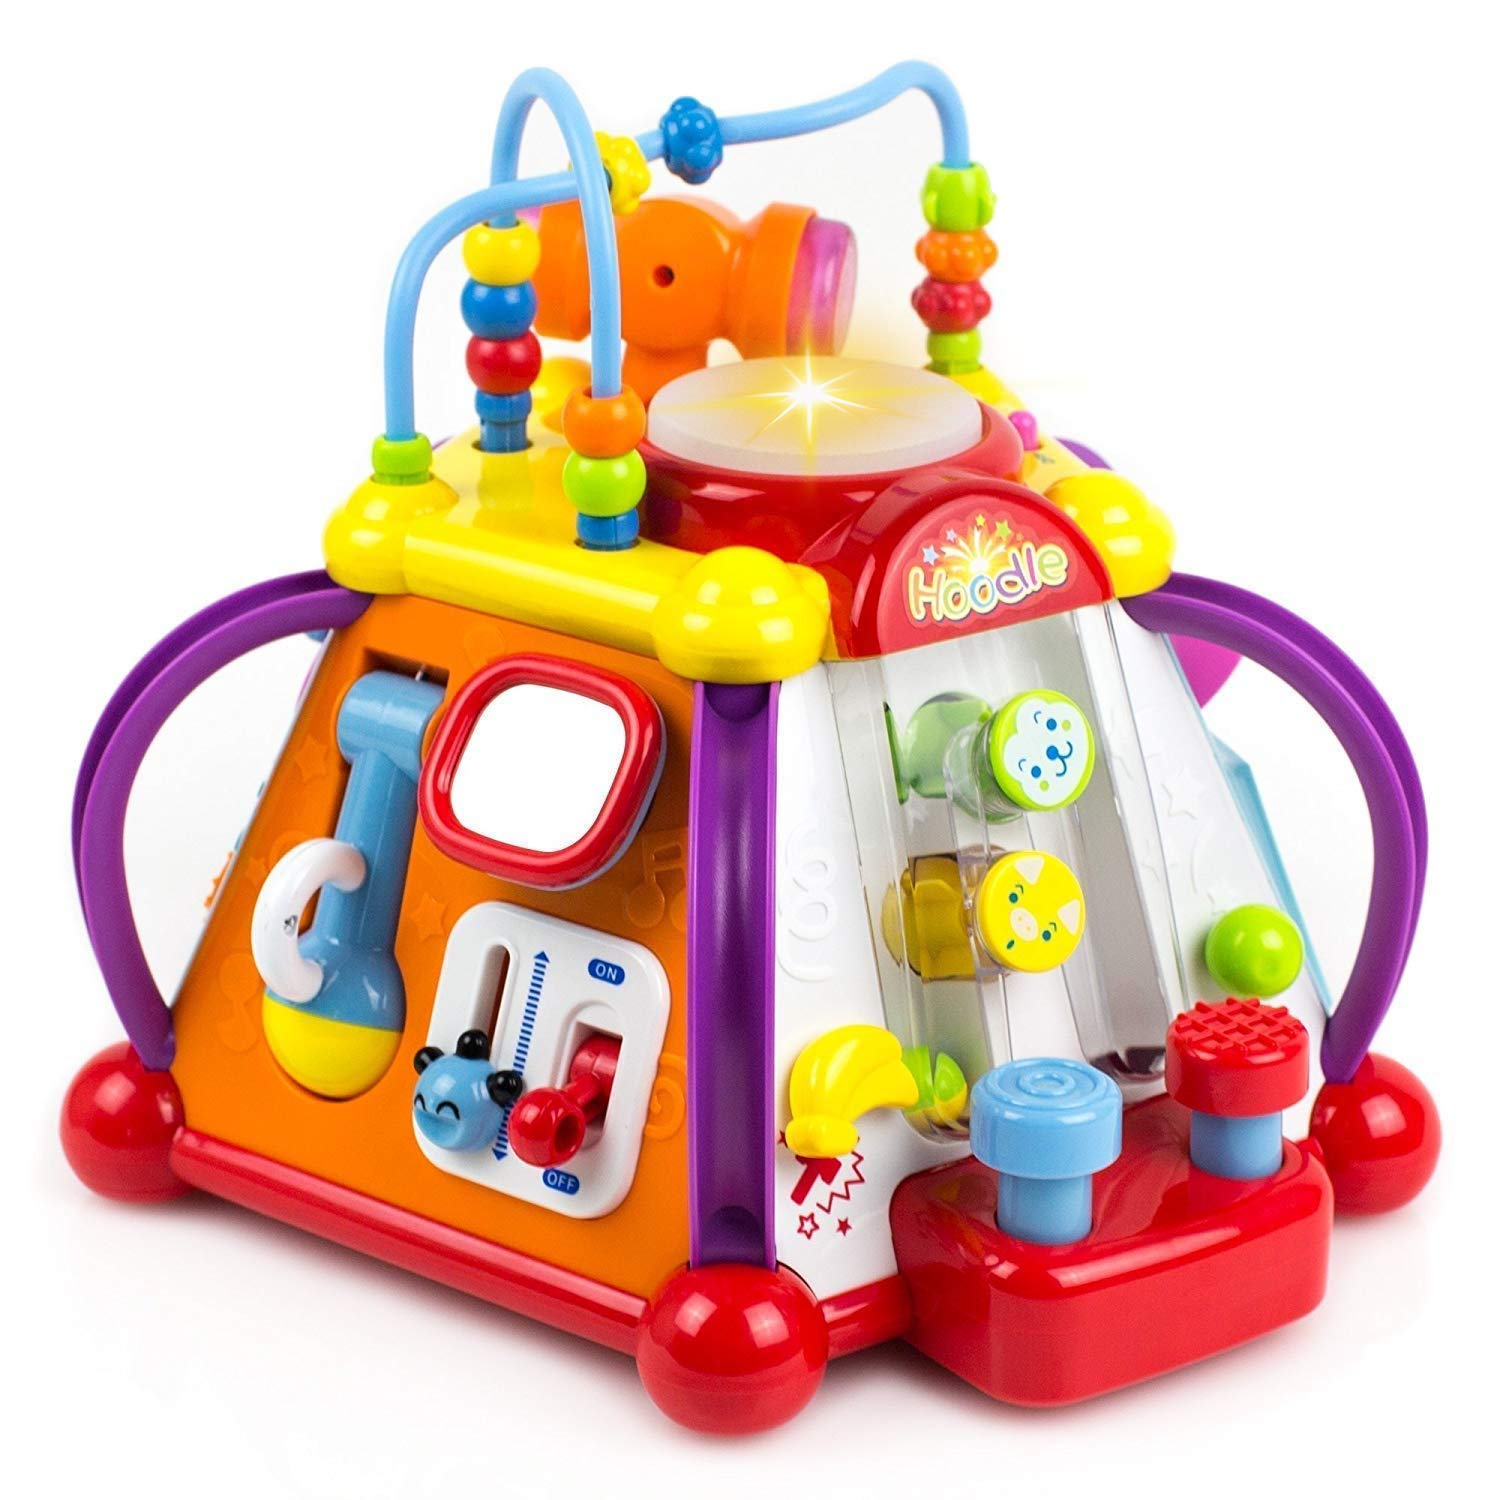 Yiosion Musical Activity Cube Play Center Educational Learning Toy with Music and Sounds for 1 2 3 Year Old Baby Toddler Girls Boys